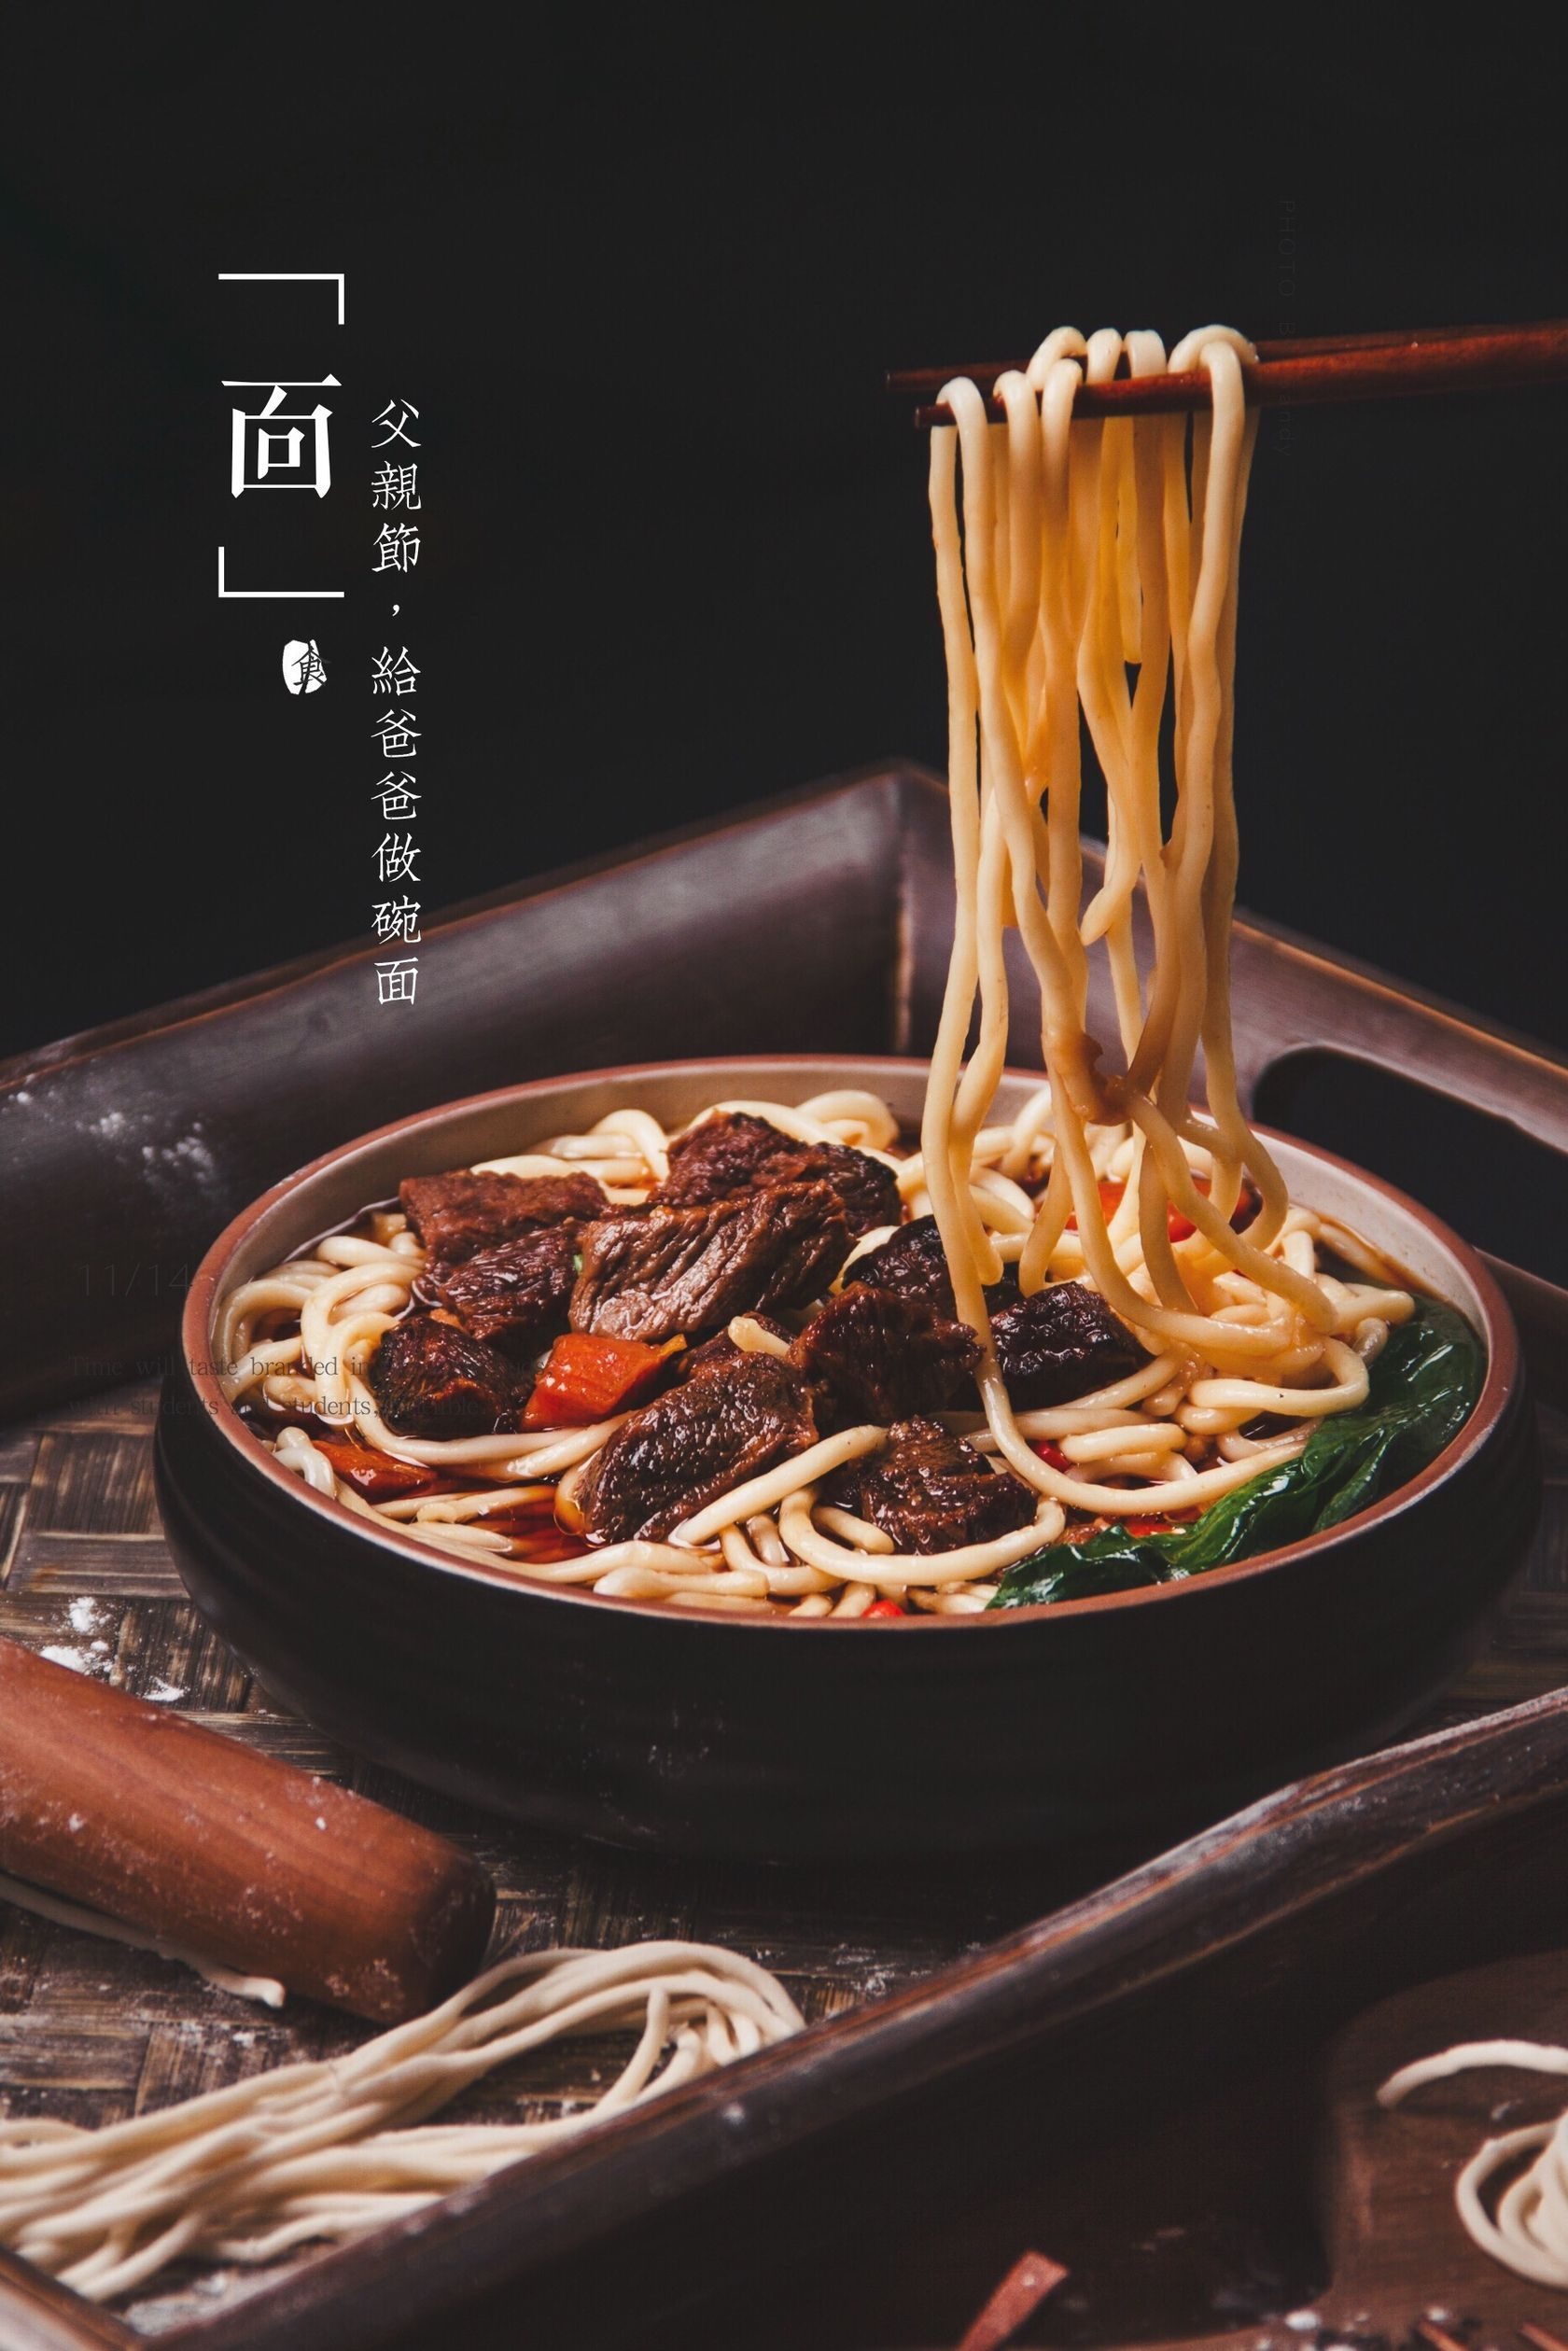 Chinese Beef Noodle Food In 2020 Asian Food Photography Food